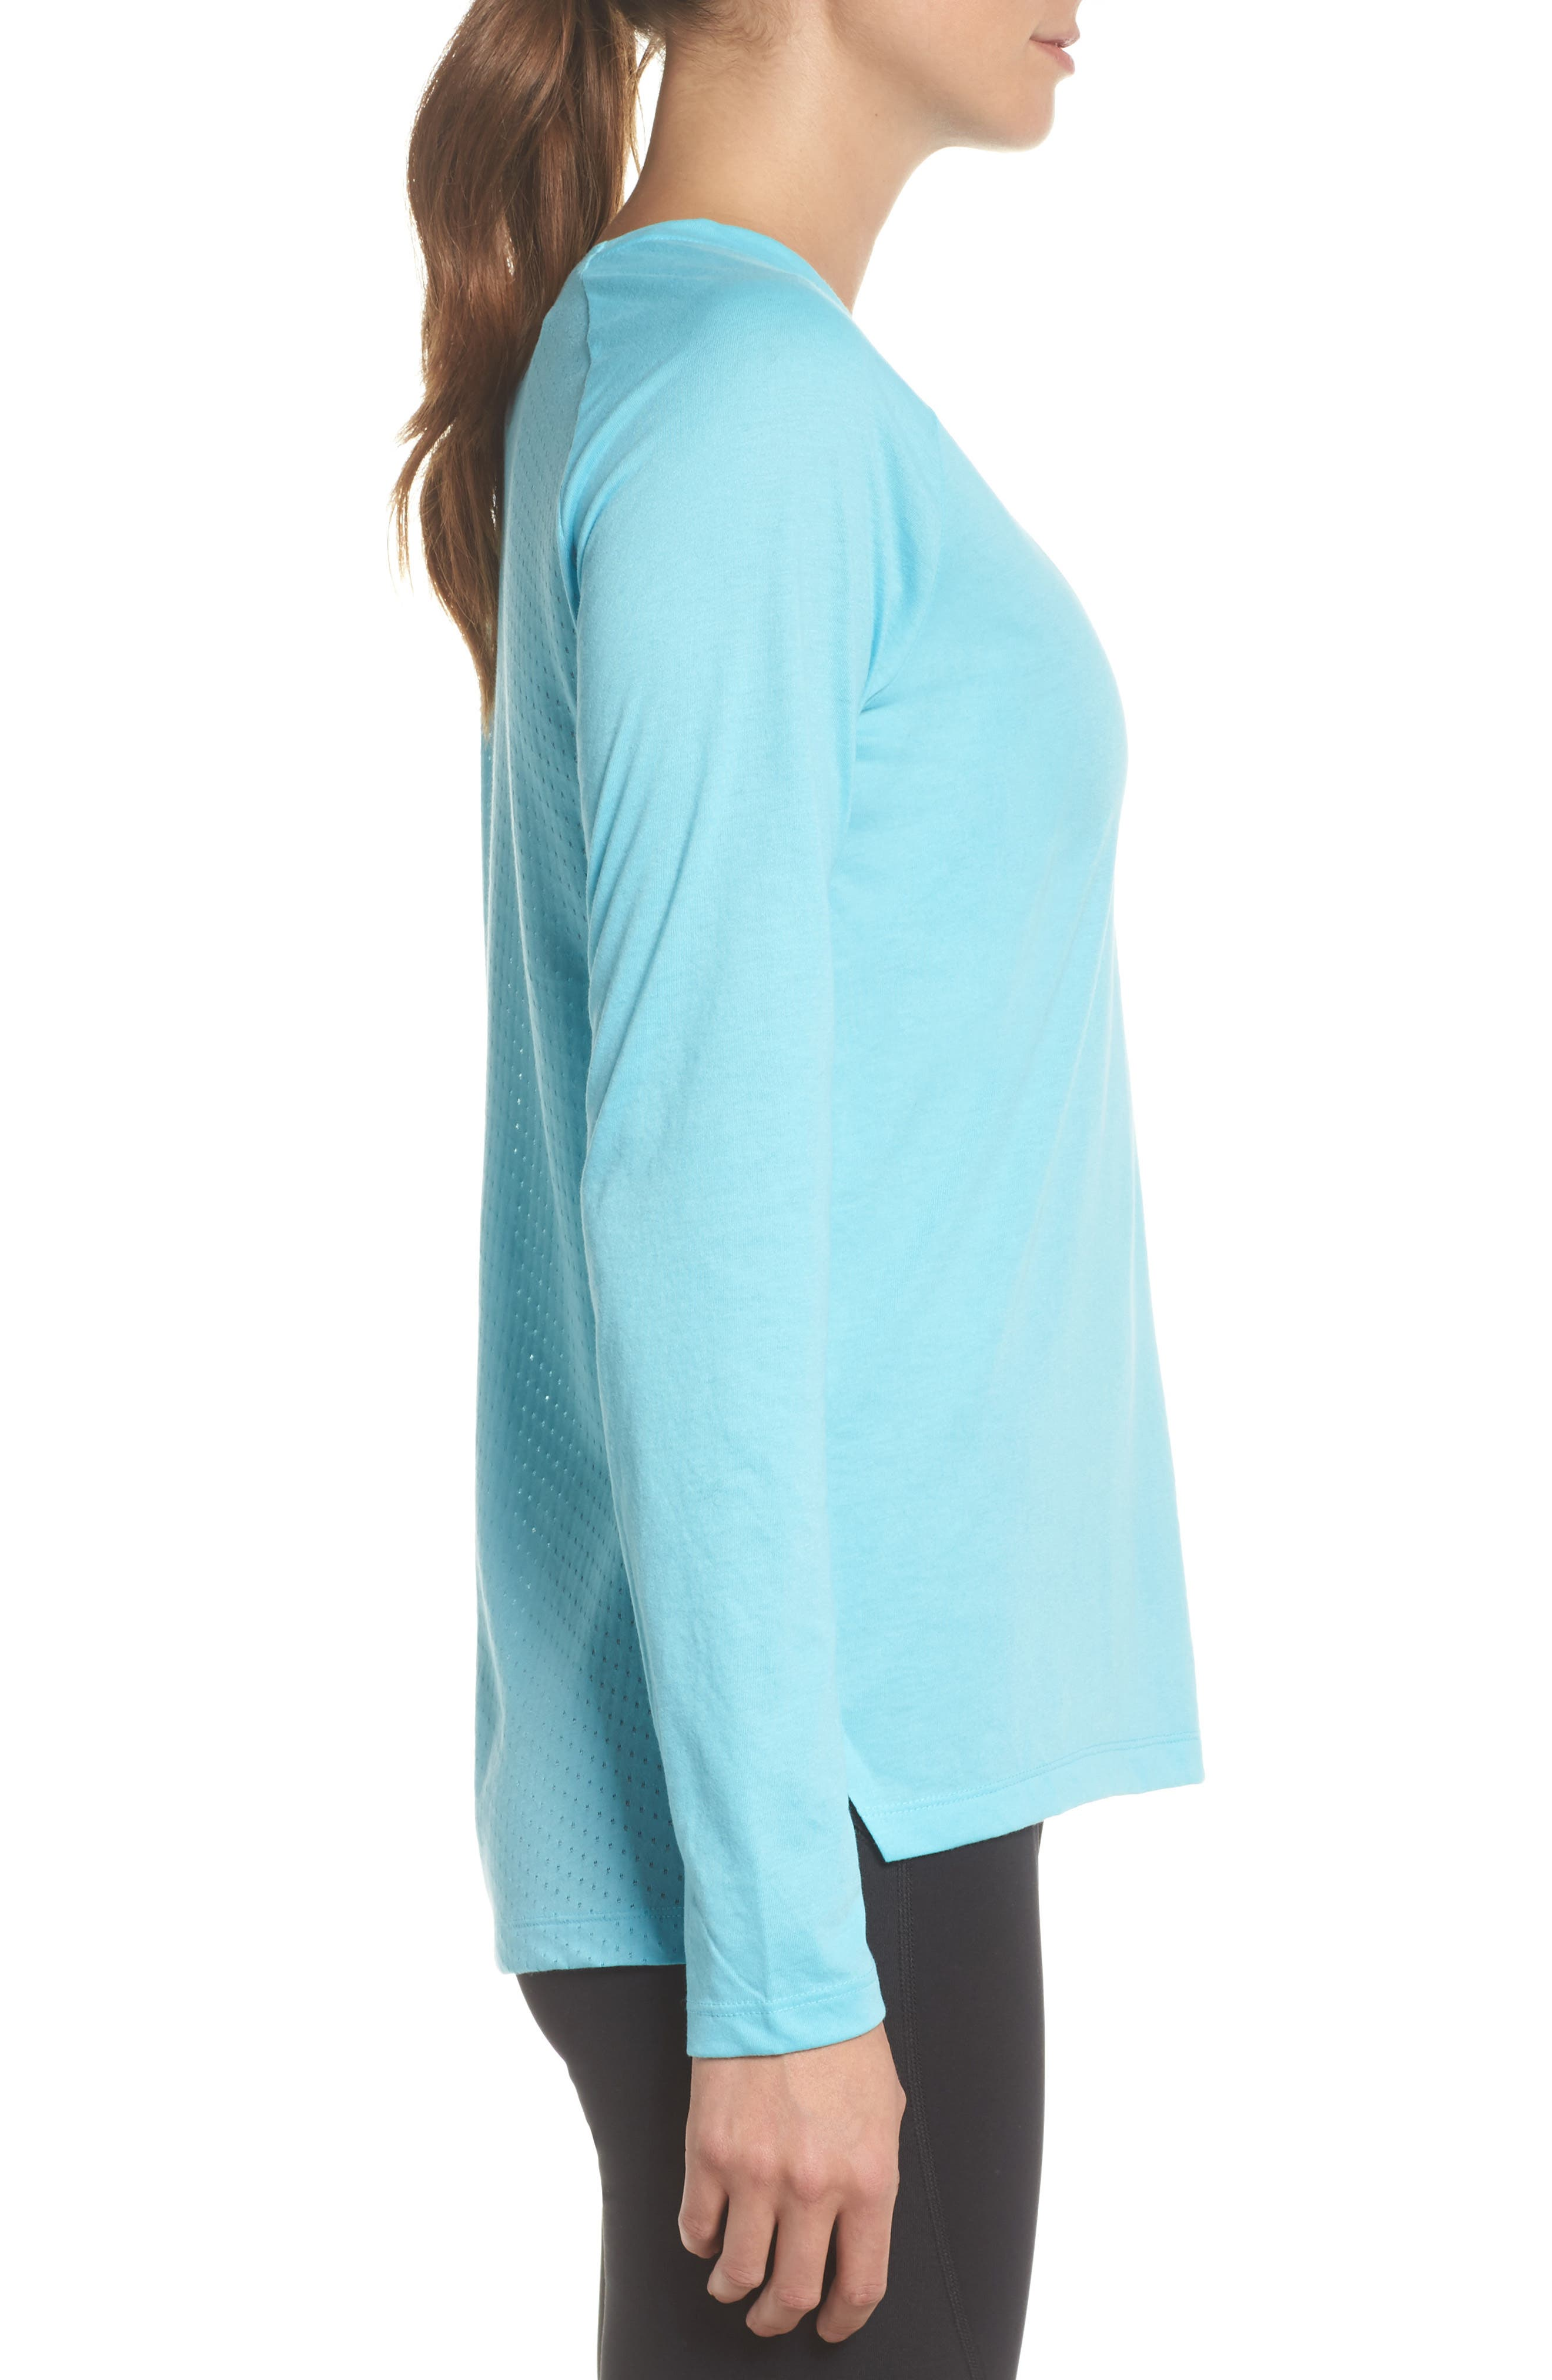 Breathe Tailwind Running Top,                             Alternate thumbnail 7, color,